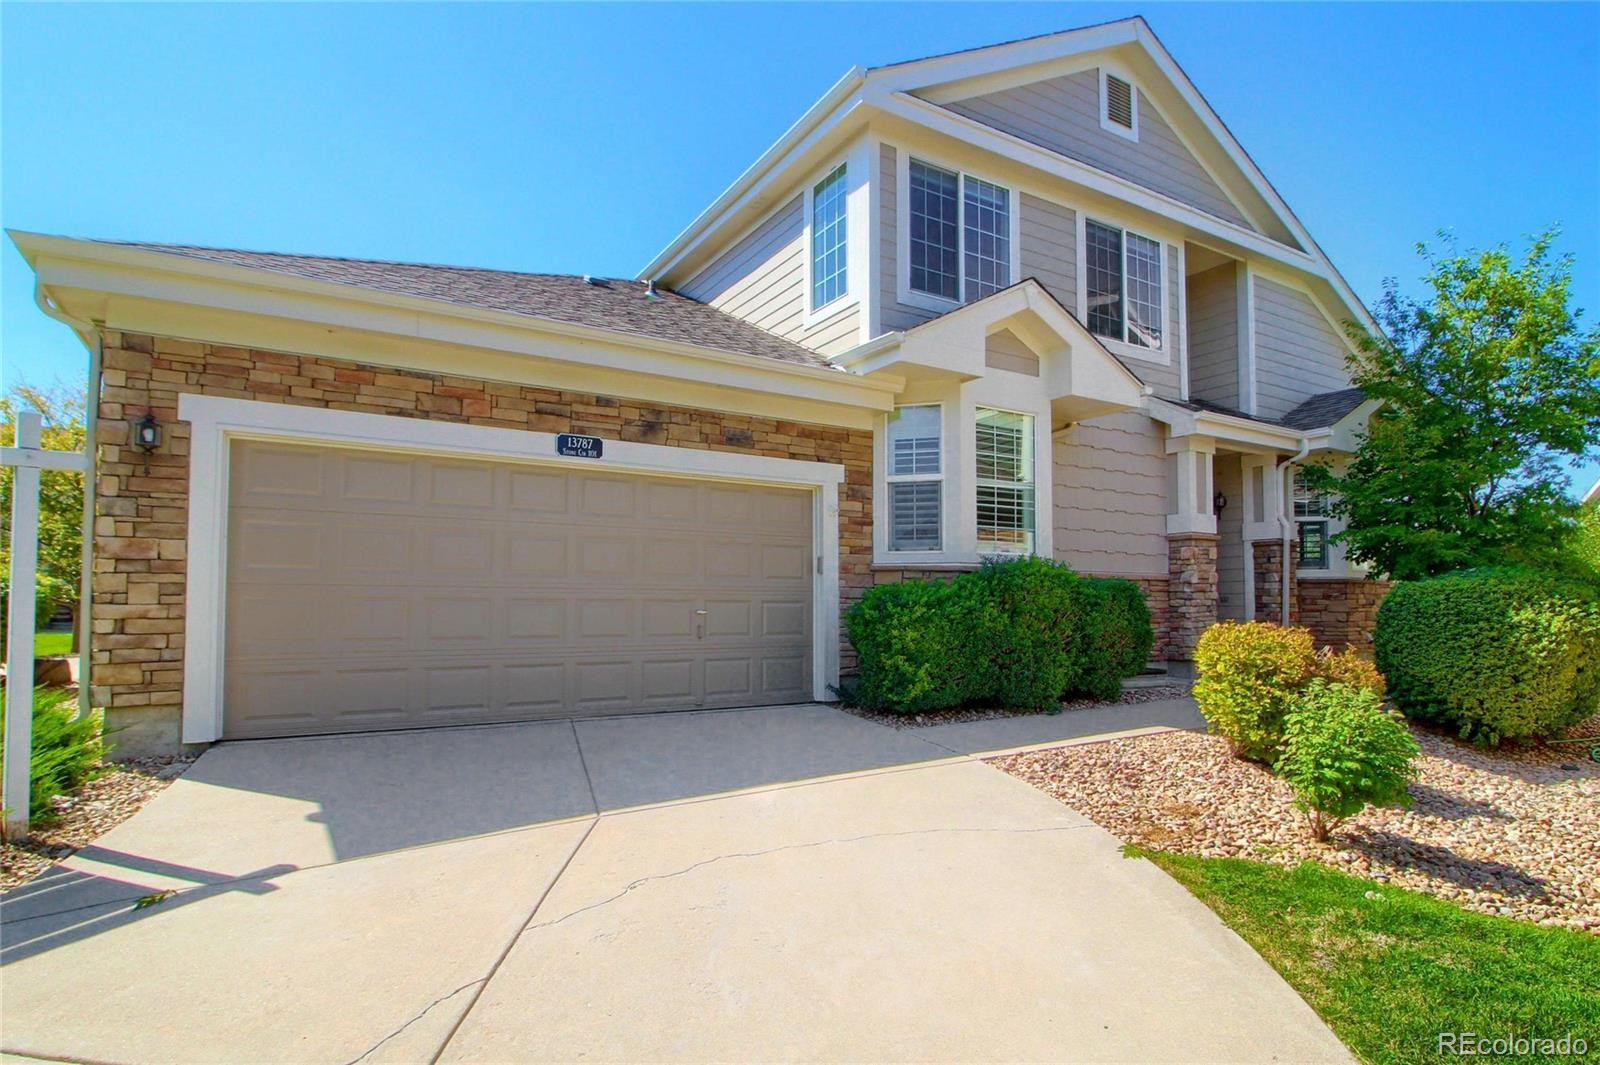 MLS# 8597792 - 1 - 13787 Stone Circle #101, Broomfield, CO 80023